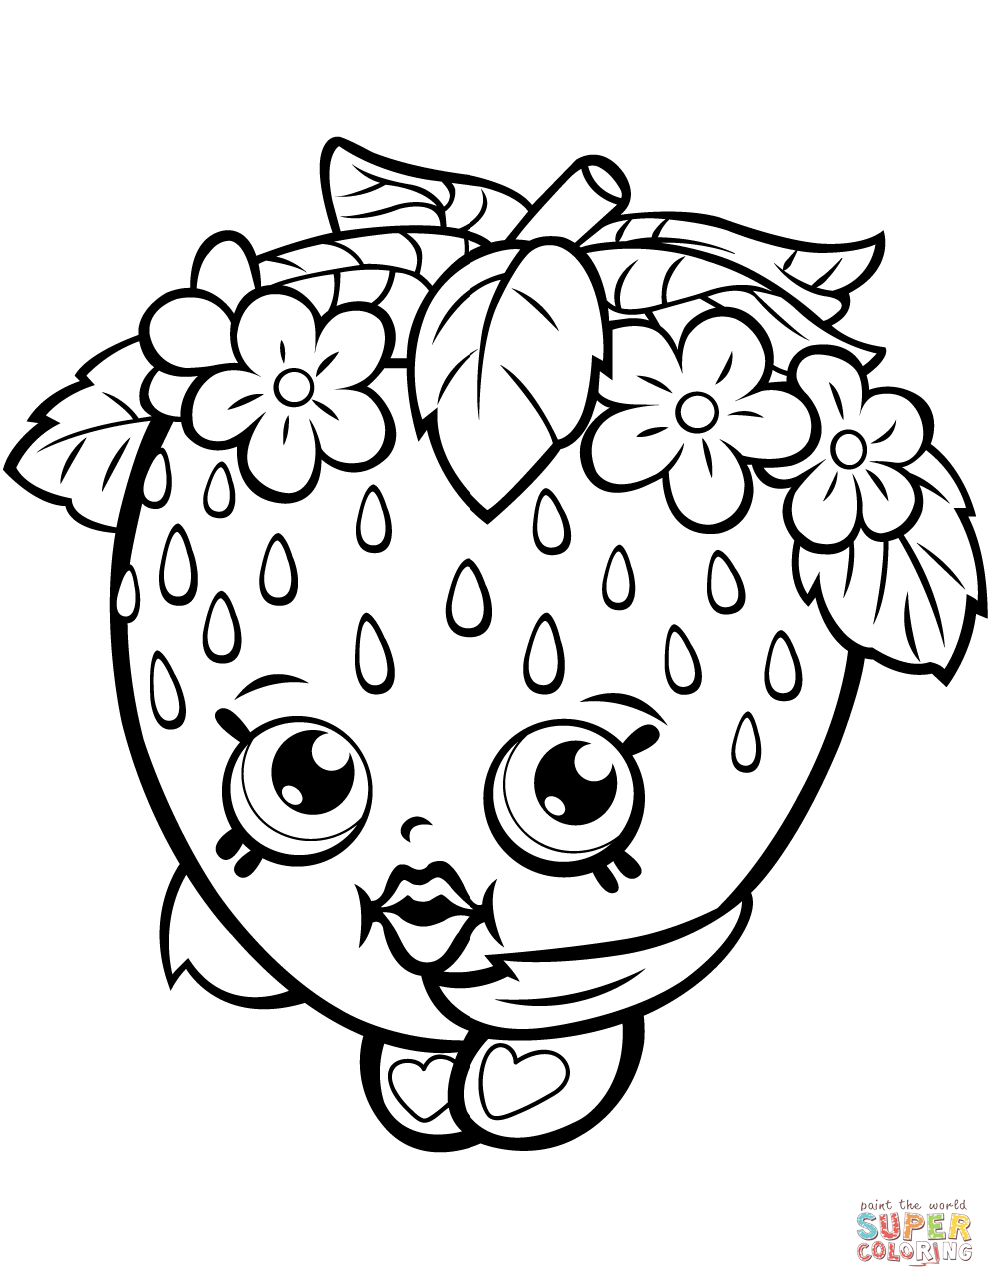 Strawberry Kiss Shopkin Coloring Page Free Printable Coloring Pages Shopkins Coloring Pages Free Printable Shopkins Colouring Pages Shopkin Coloring Pages